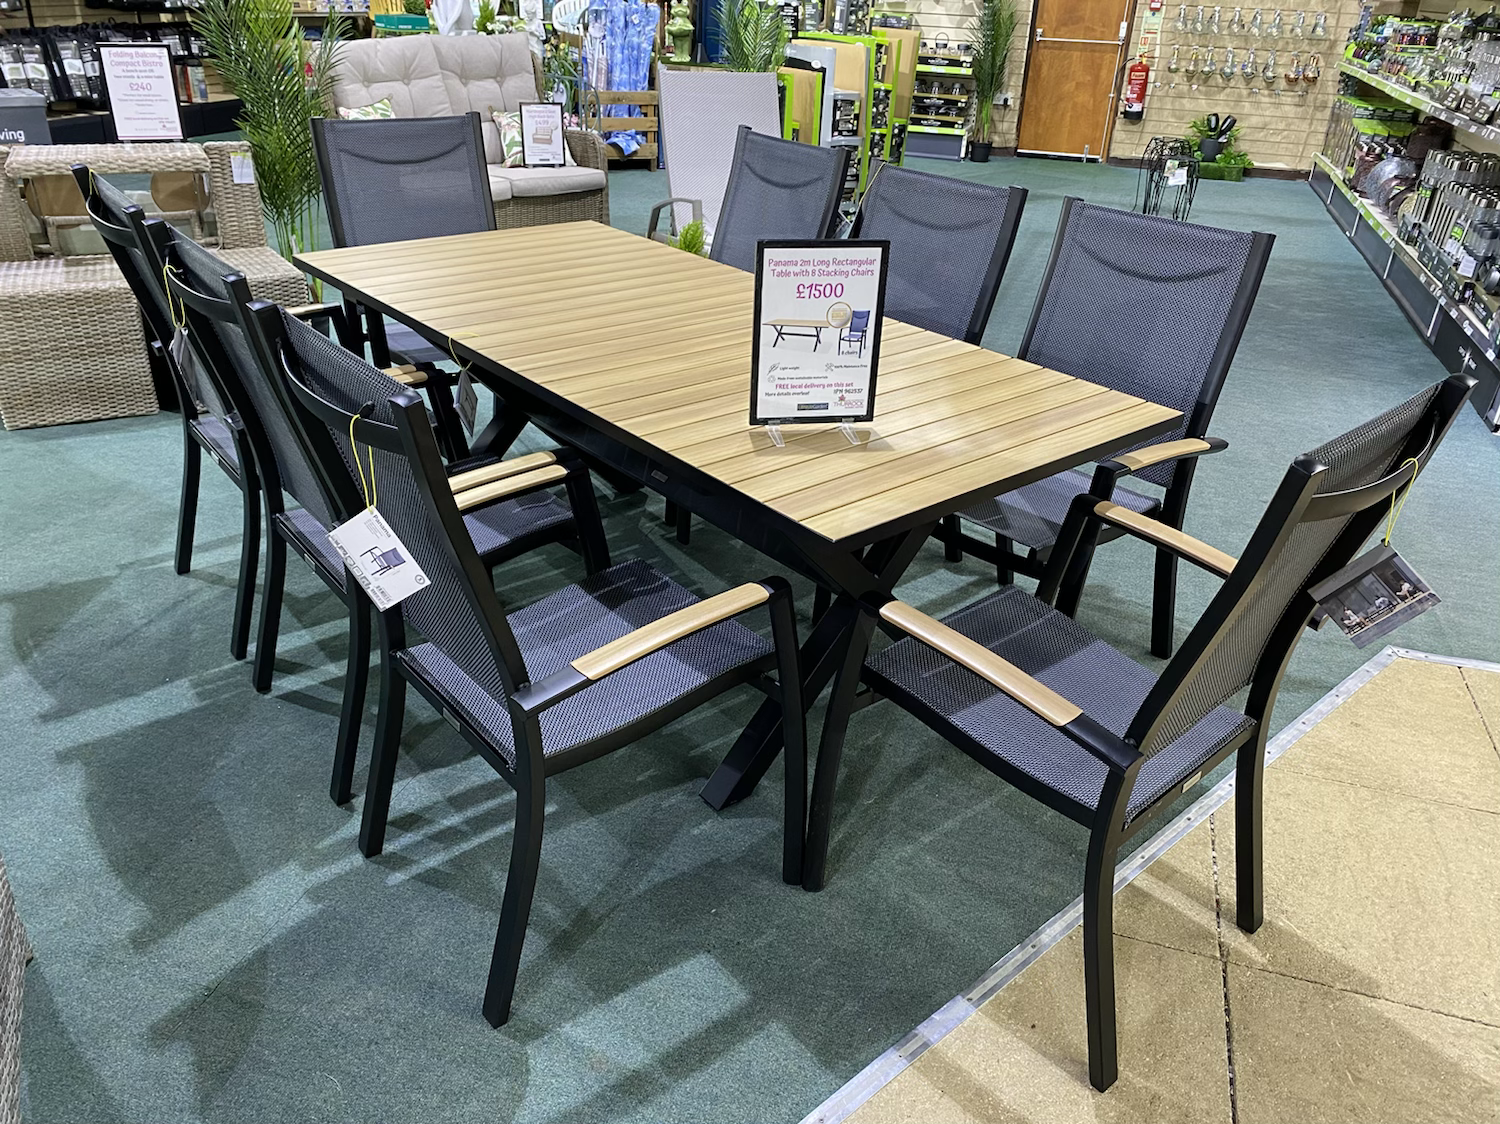 Panama 2m Long Rectangular Table with 8 Stacking Chairs - £1500